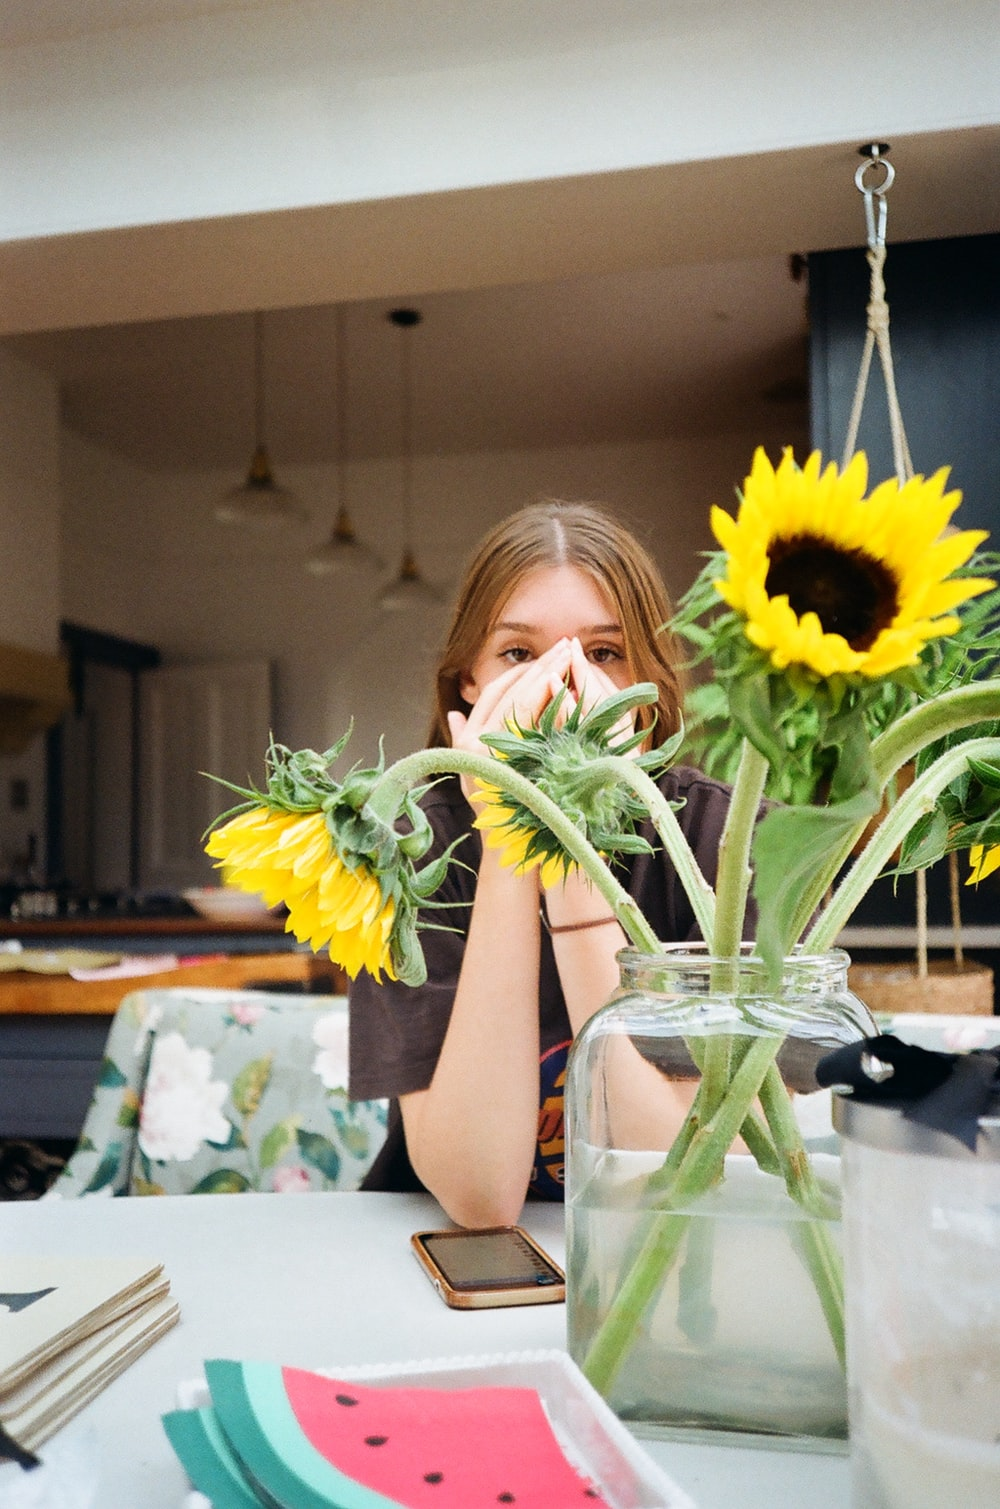 yellow sunflowers beside girl